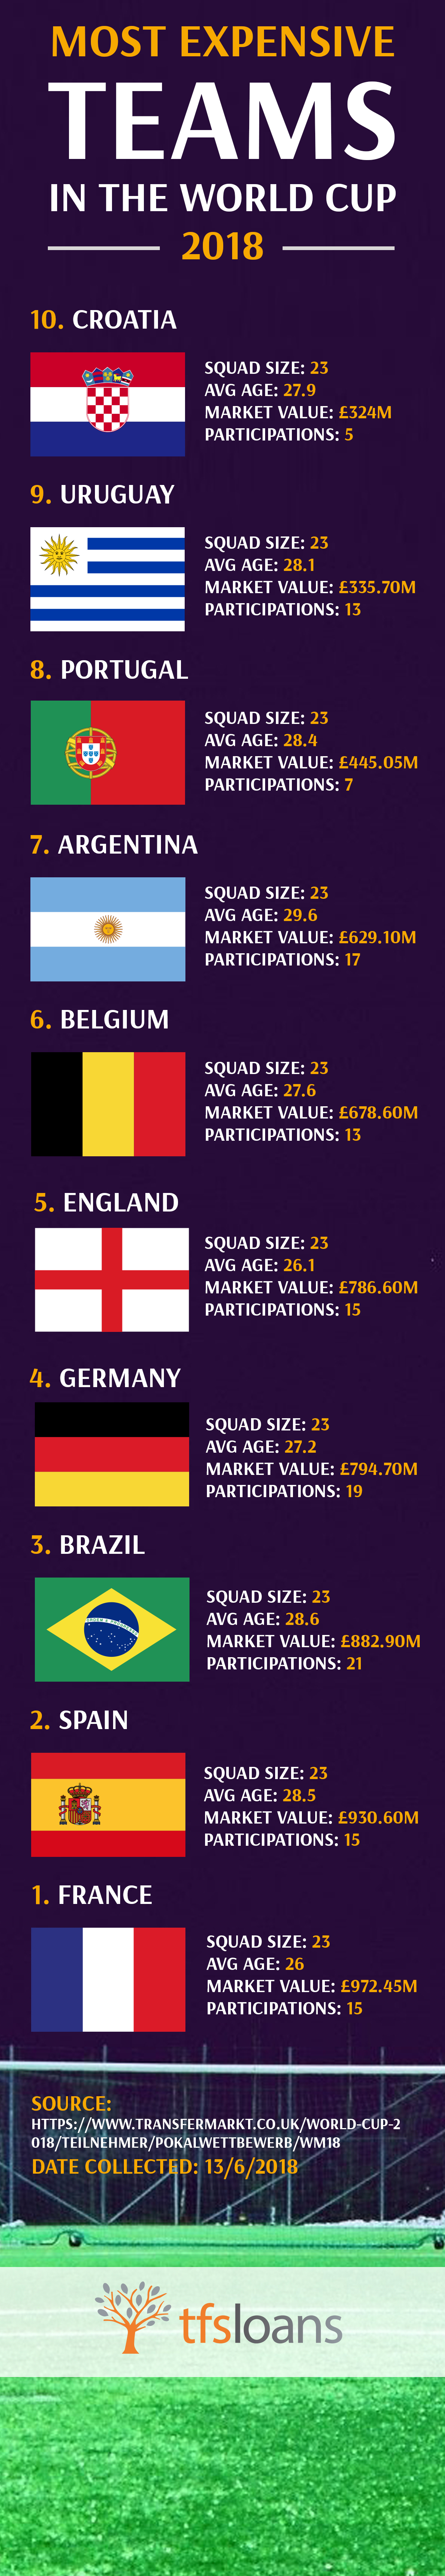 most expensive teams in the world cup 2018 infographic